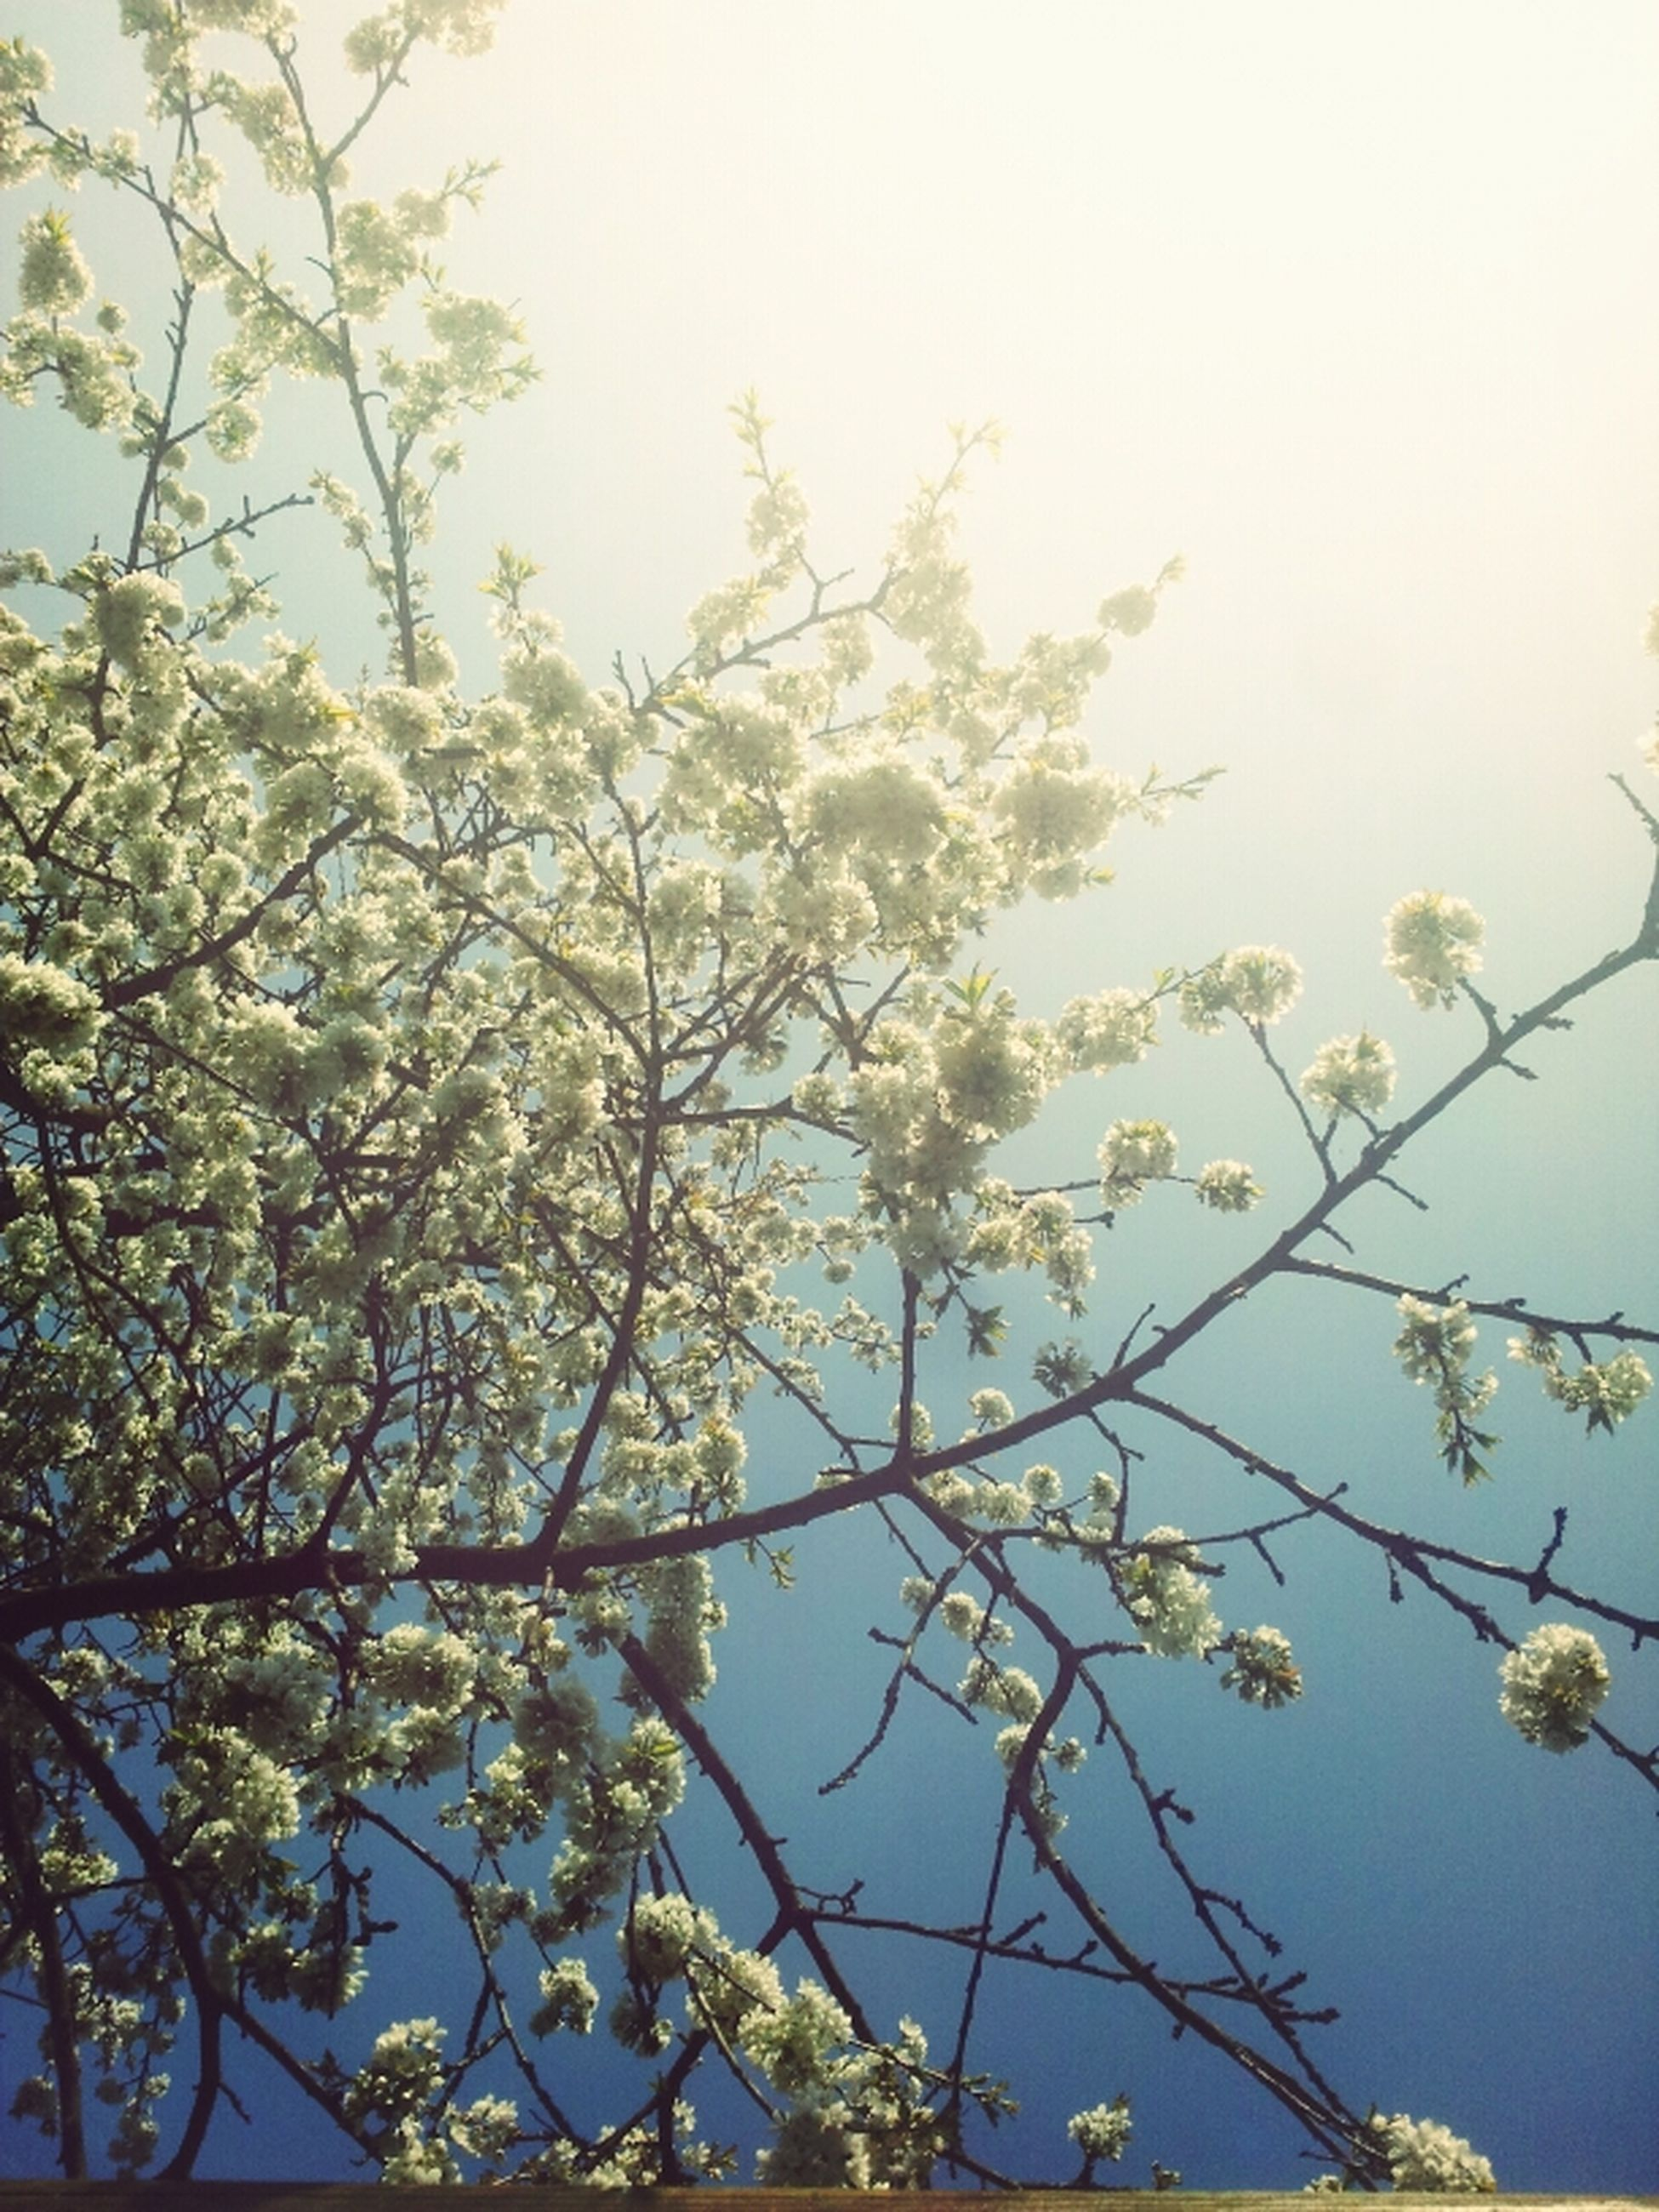 low angle view, branch, tree, flower, growth, clear sky, freshness, beauty in nature, nature, sky, fragility, blossom, day, no people, outdoors, twig, high section, blooming, leaf, tranquility